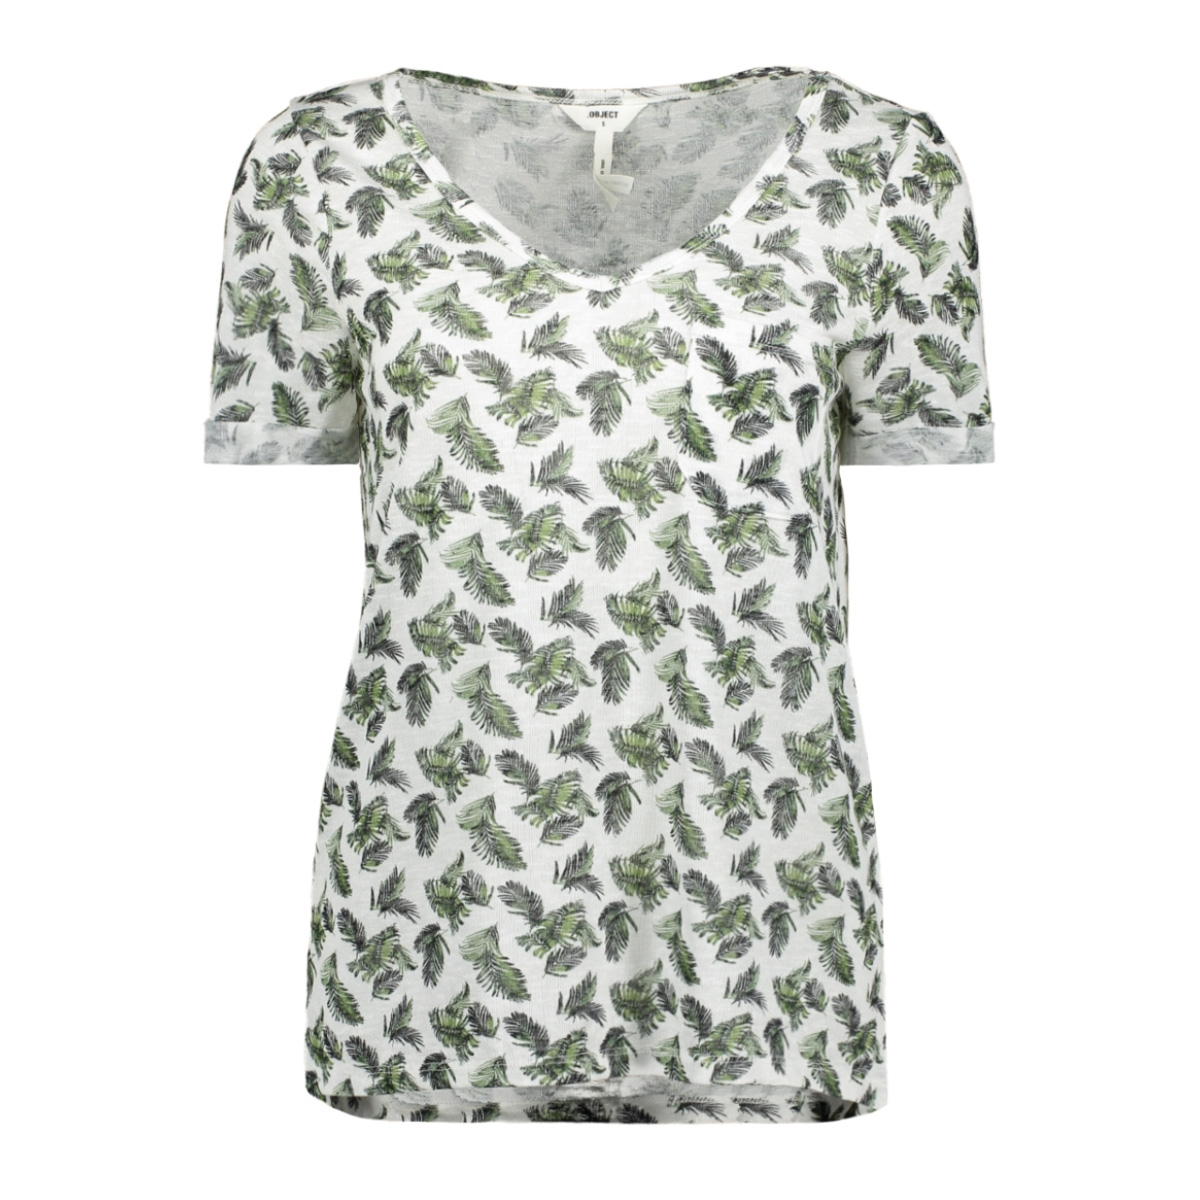 objtessi slub s/s v-neck aop season 23029730 object t-shirt gardenia/small palm